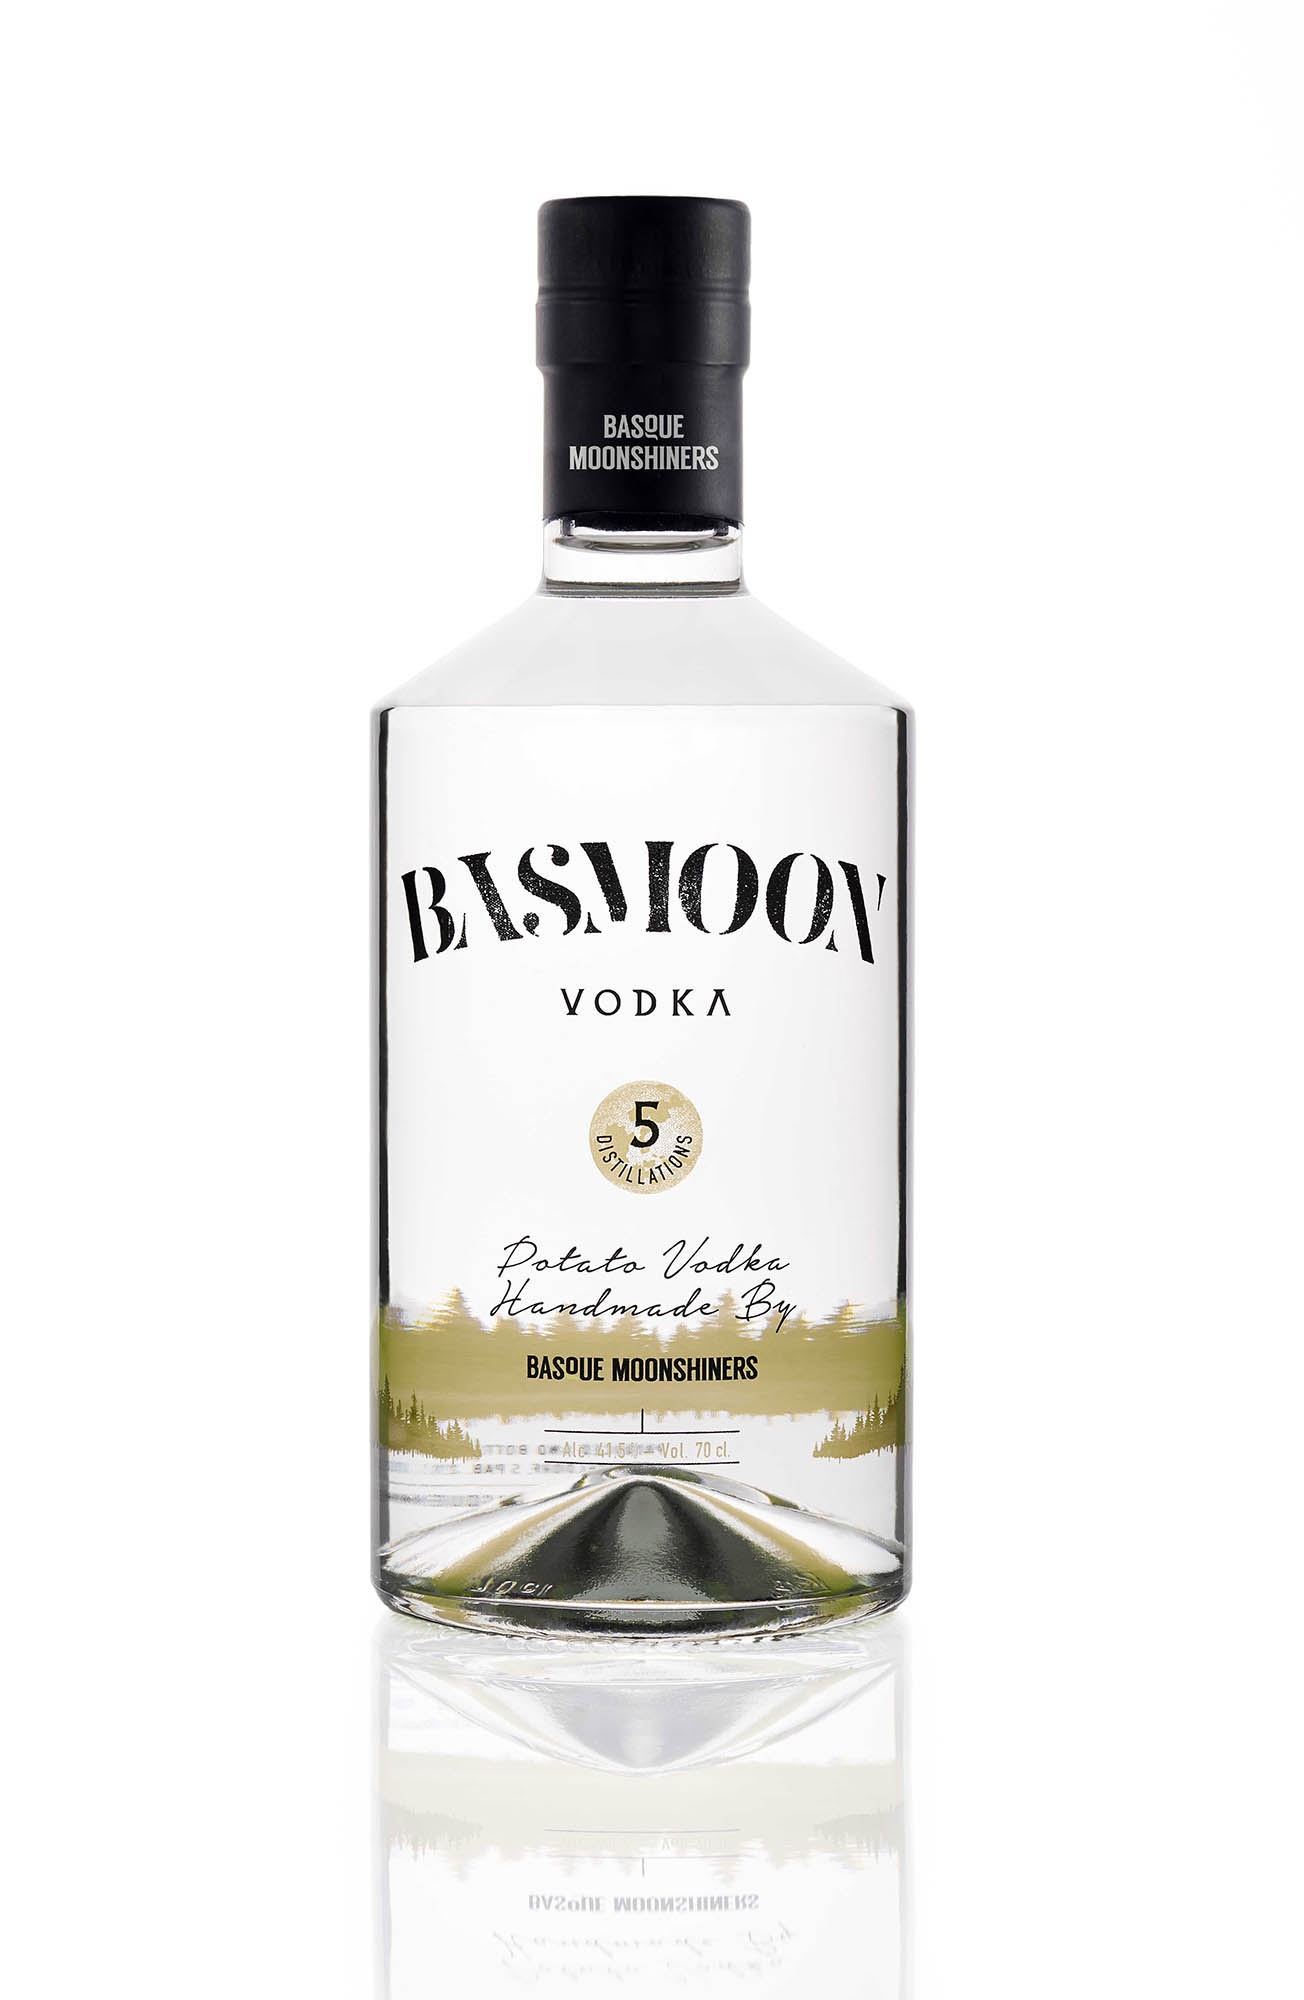 erredehierro basmoon vodka marca new brand advertising vitoria gasteiz